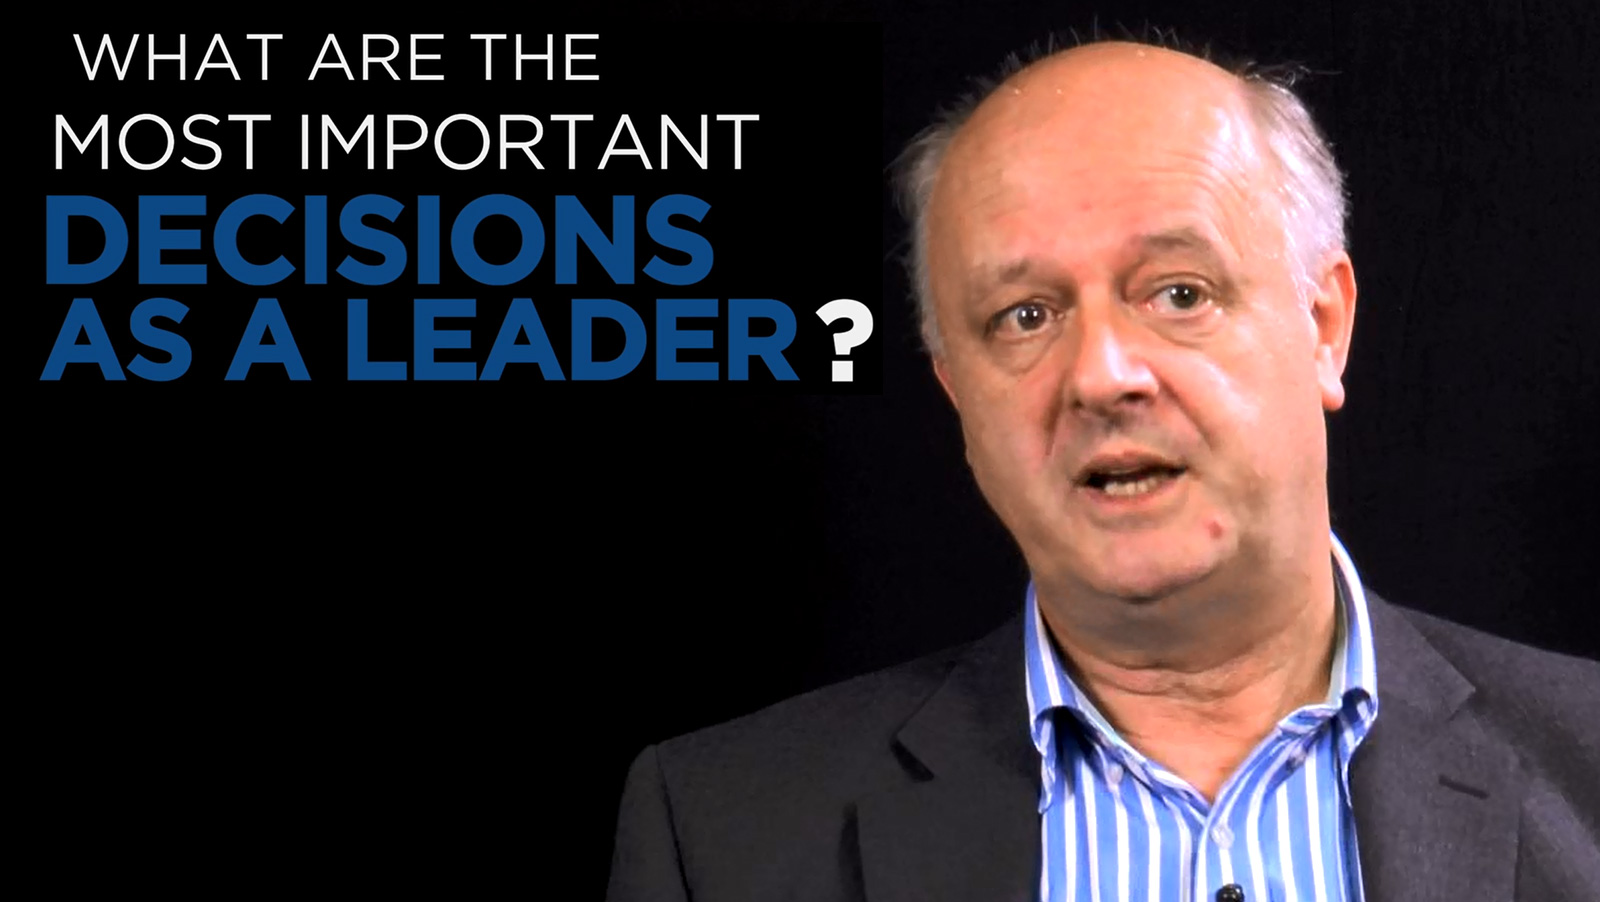 Mark Blandford: Shared Experince - What are the most important decisions as a leader?